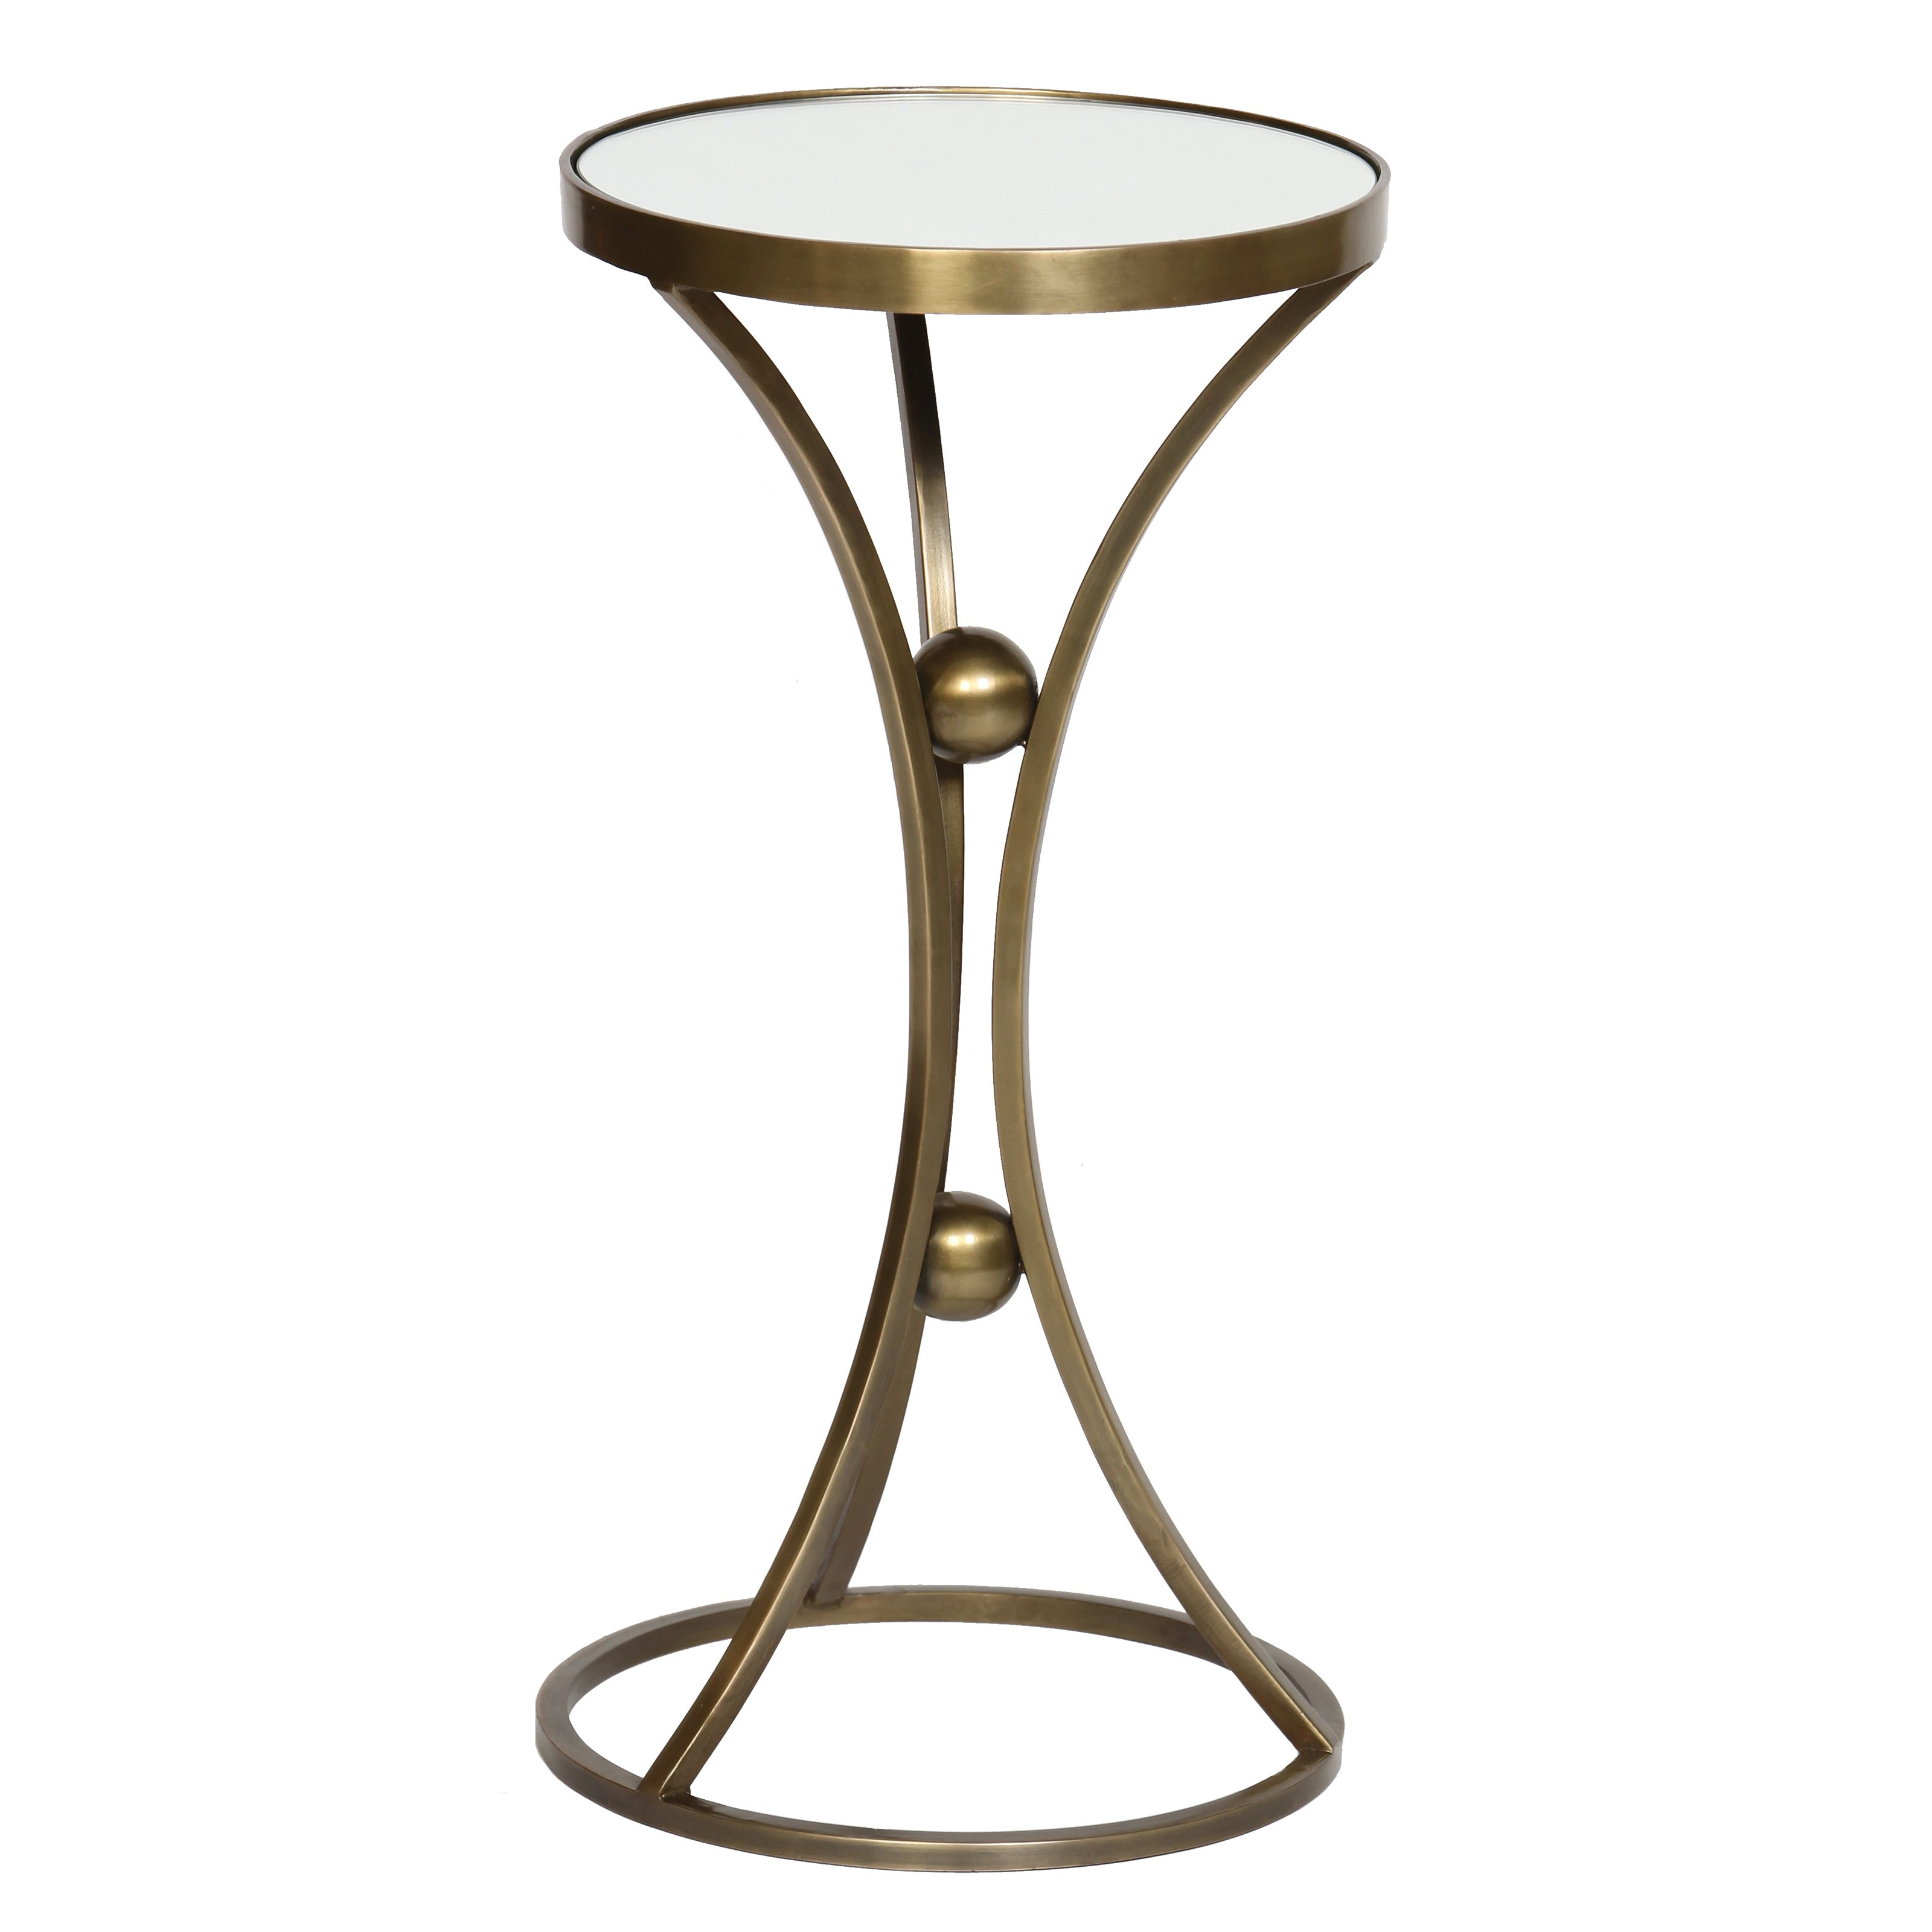 prima legged accent table antique brass transitional style end tables small rectangular board game coffee wood pedestal base cigar humidor cabinet play farm dining room sets razer